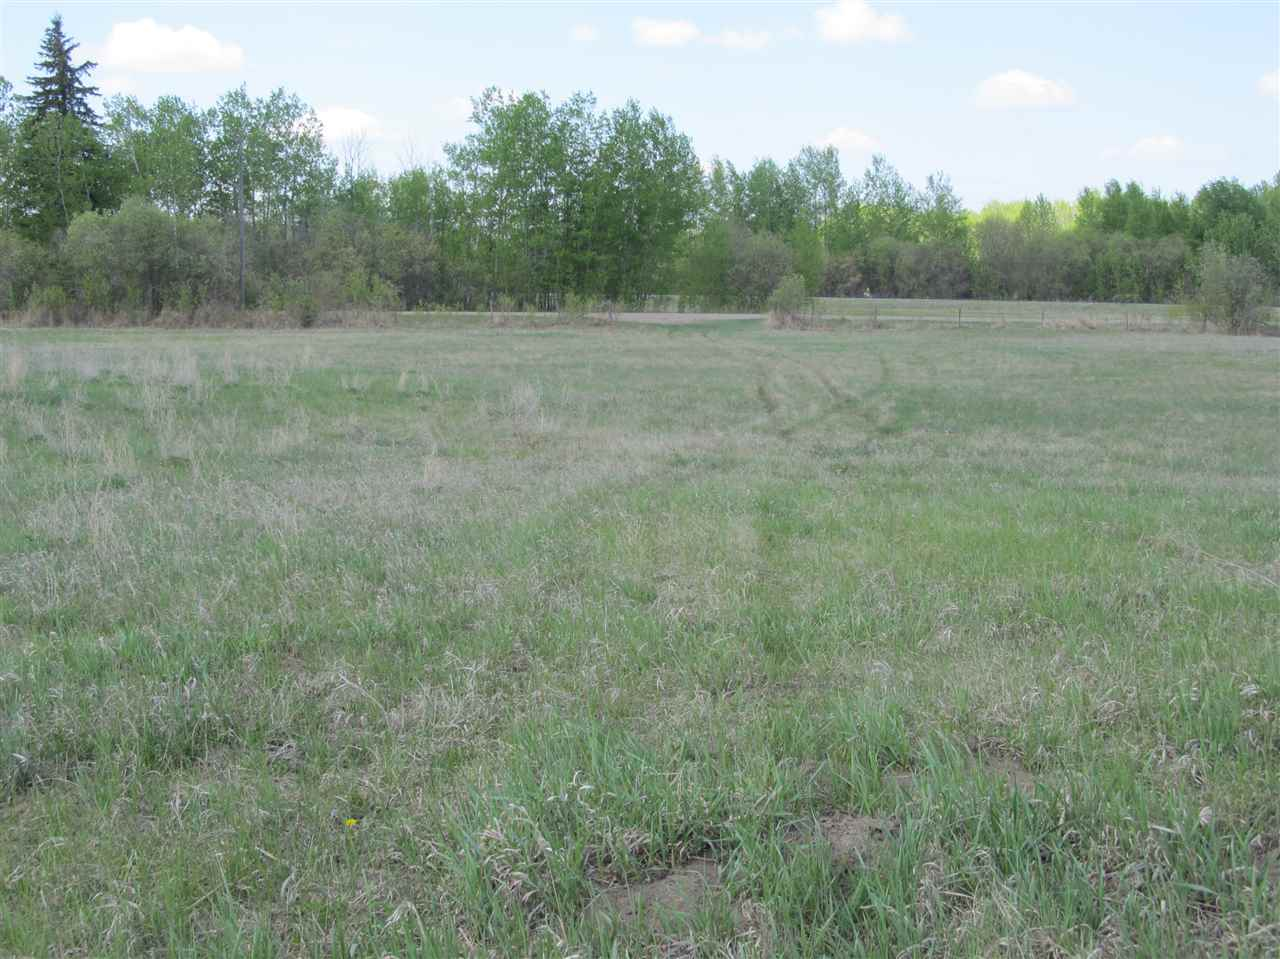 Photo 6: RR 204 HWY 661: Rural Thorhild County Rural Land/Vacant Lot for sale : MLS(r) # E4065910